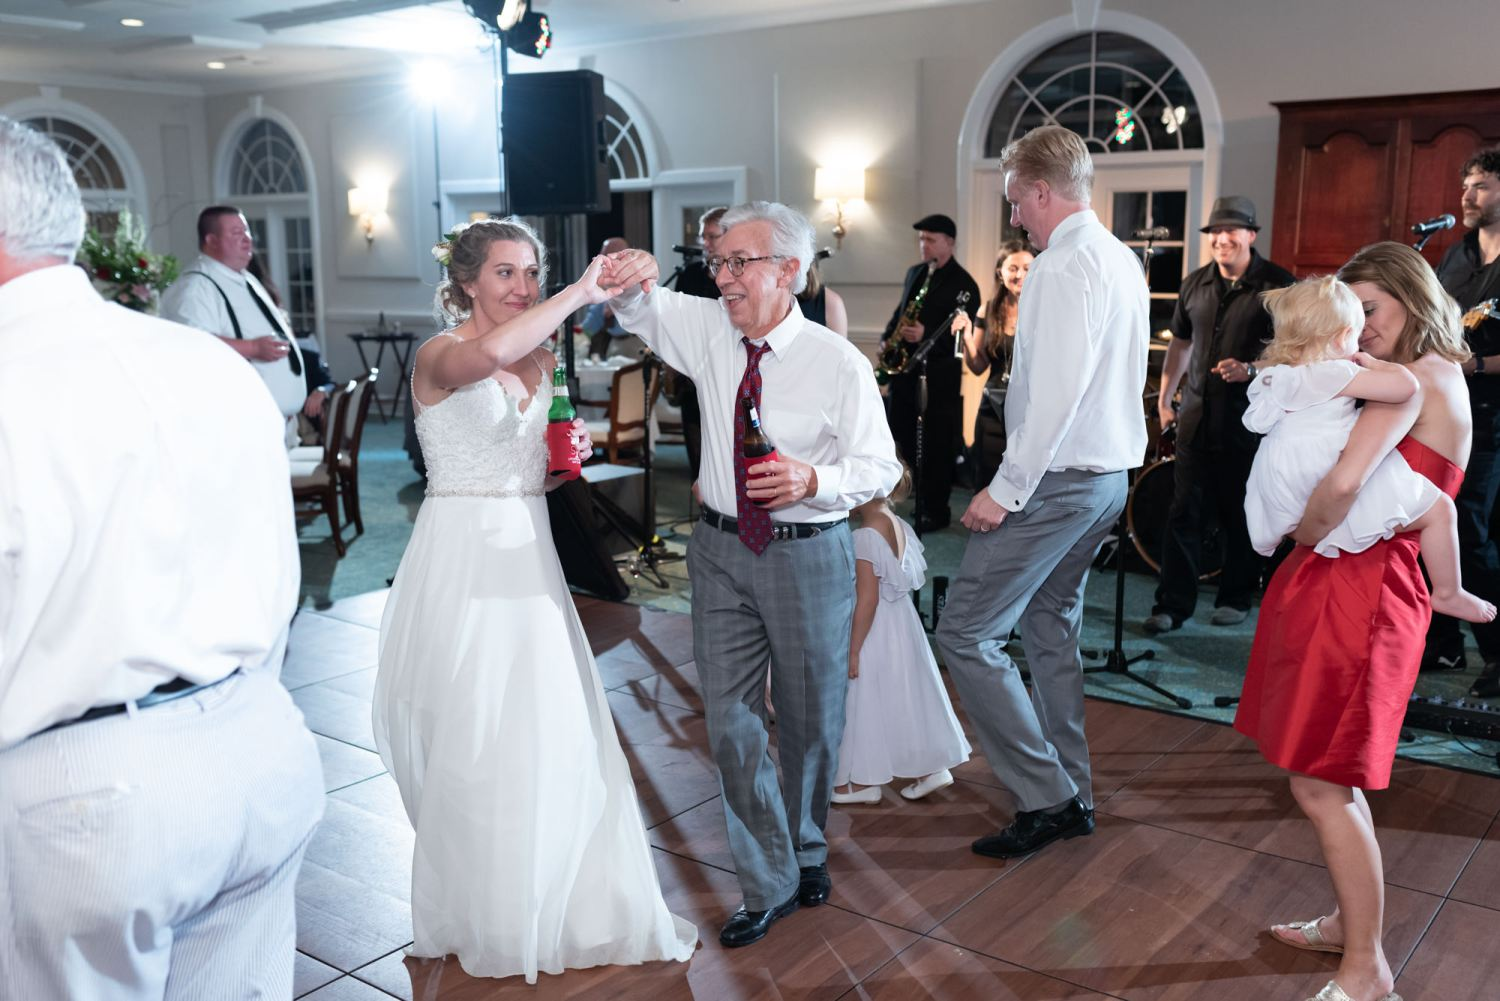 Bride dancing with father - Wachesaw Plantation